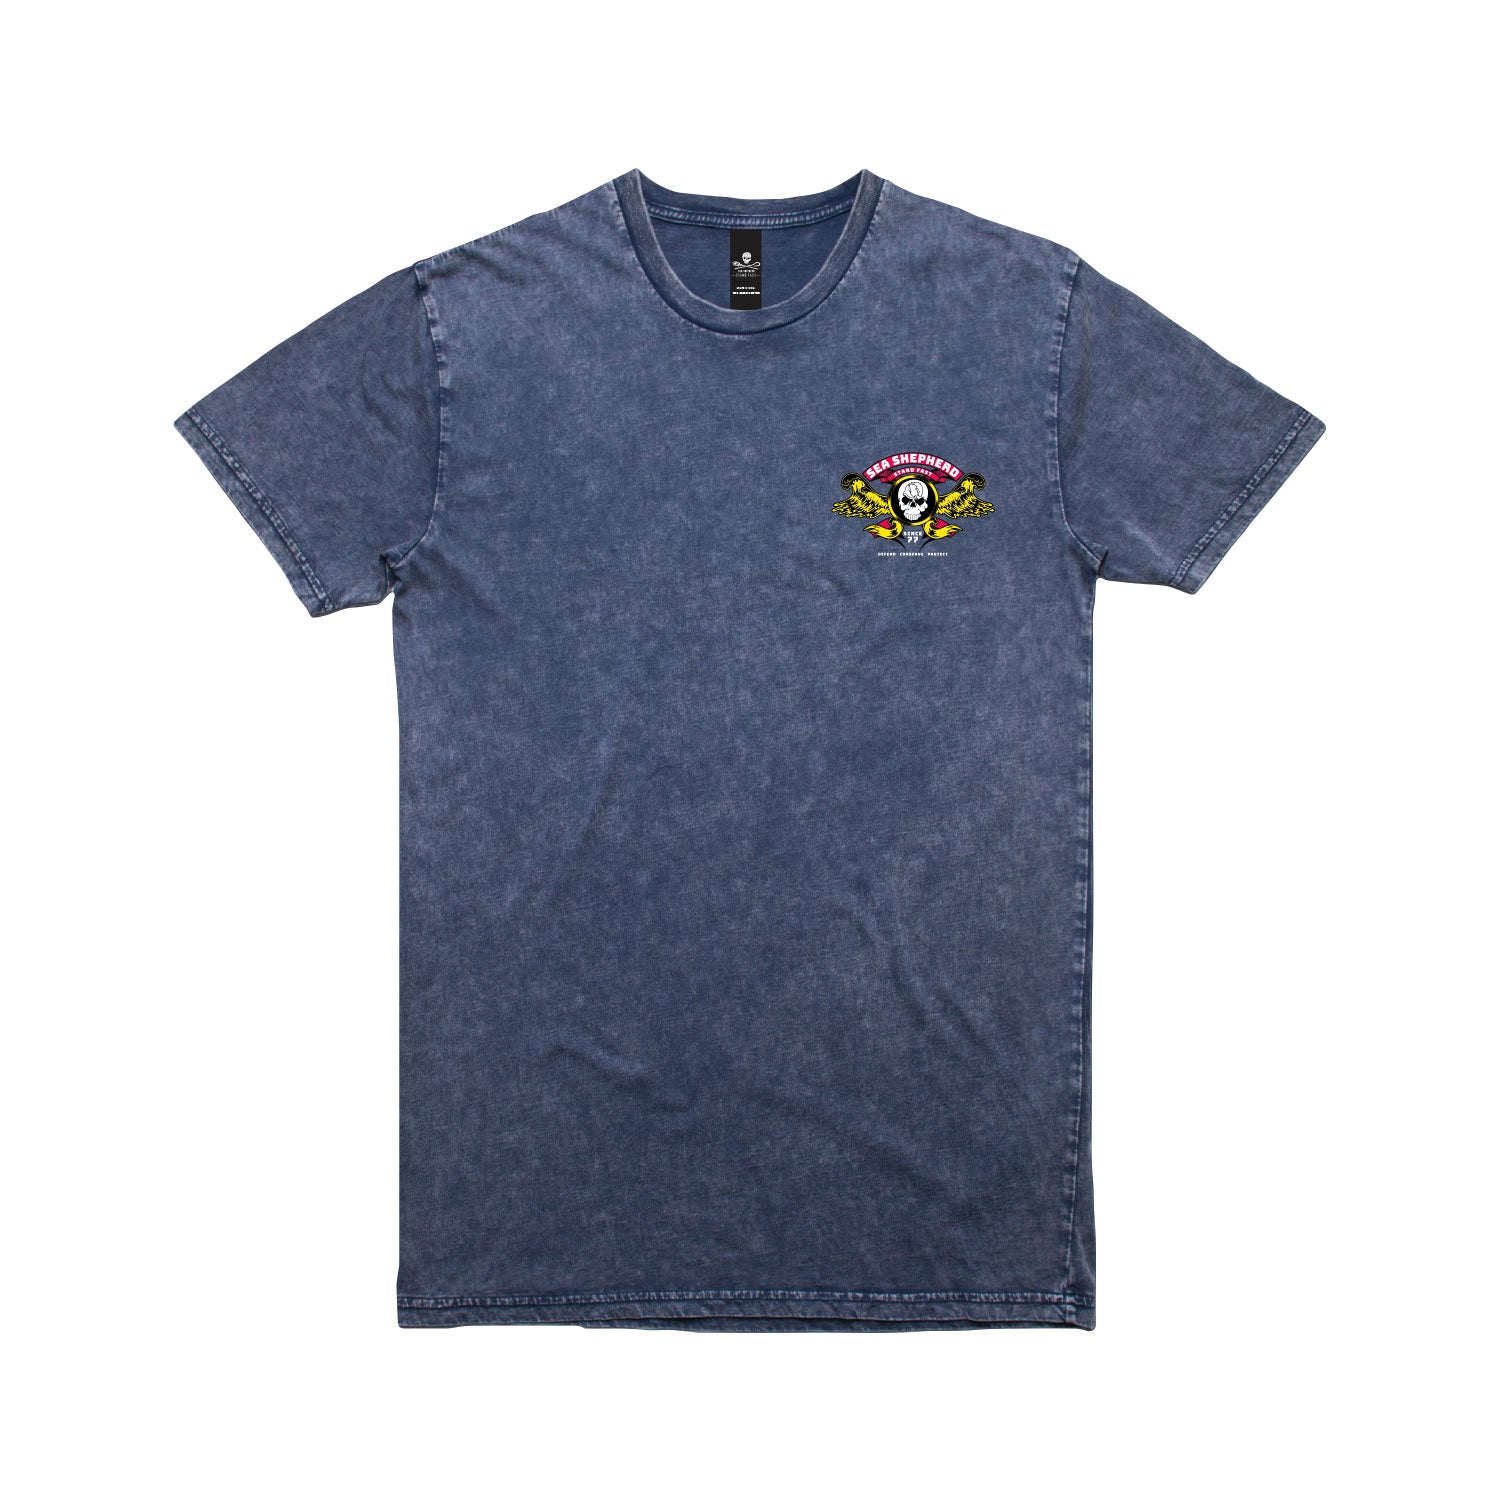 Stand Fast Barrel Wings Unisex Tee - Stone Wash Denim